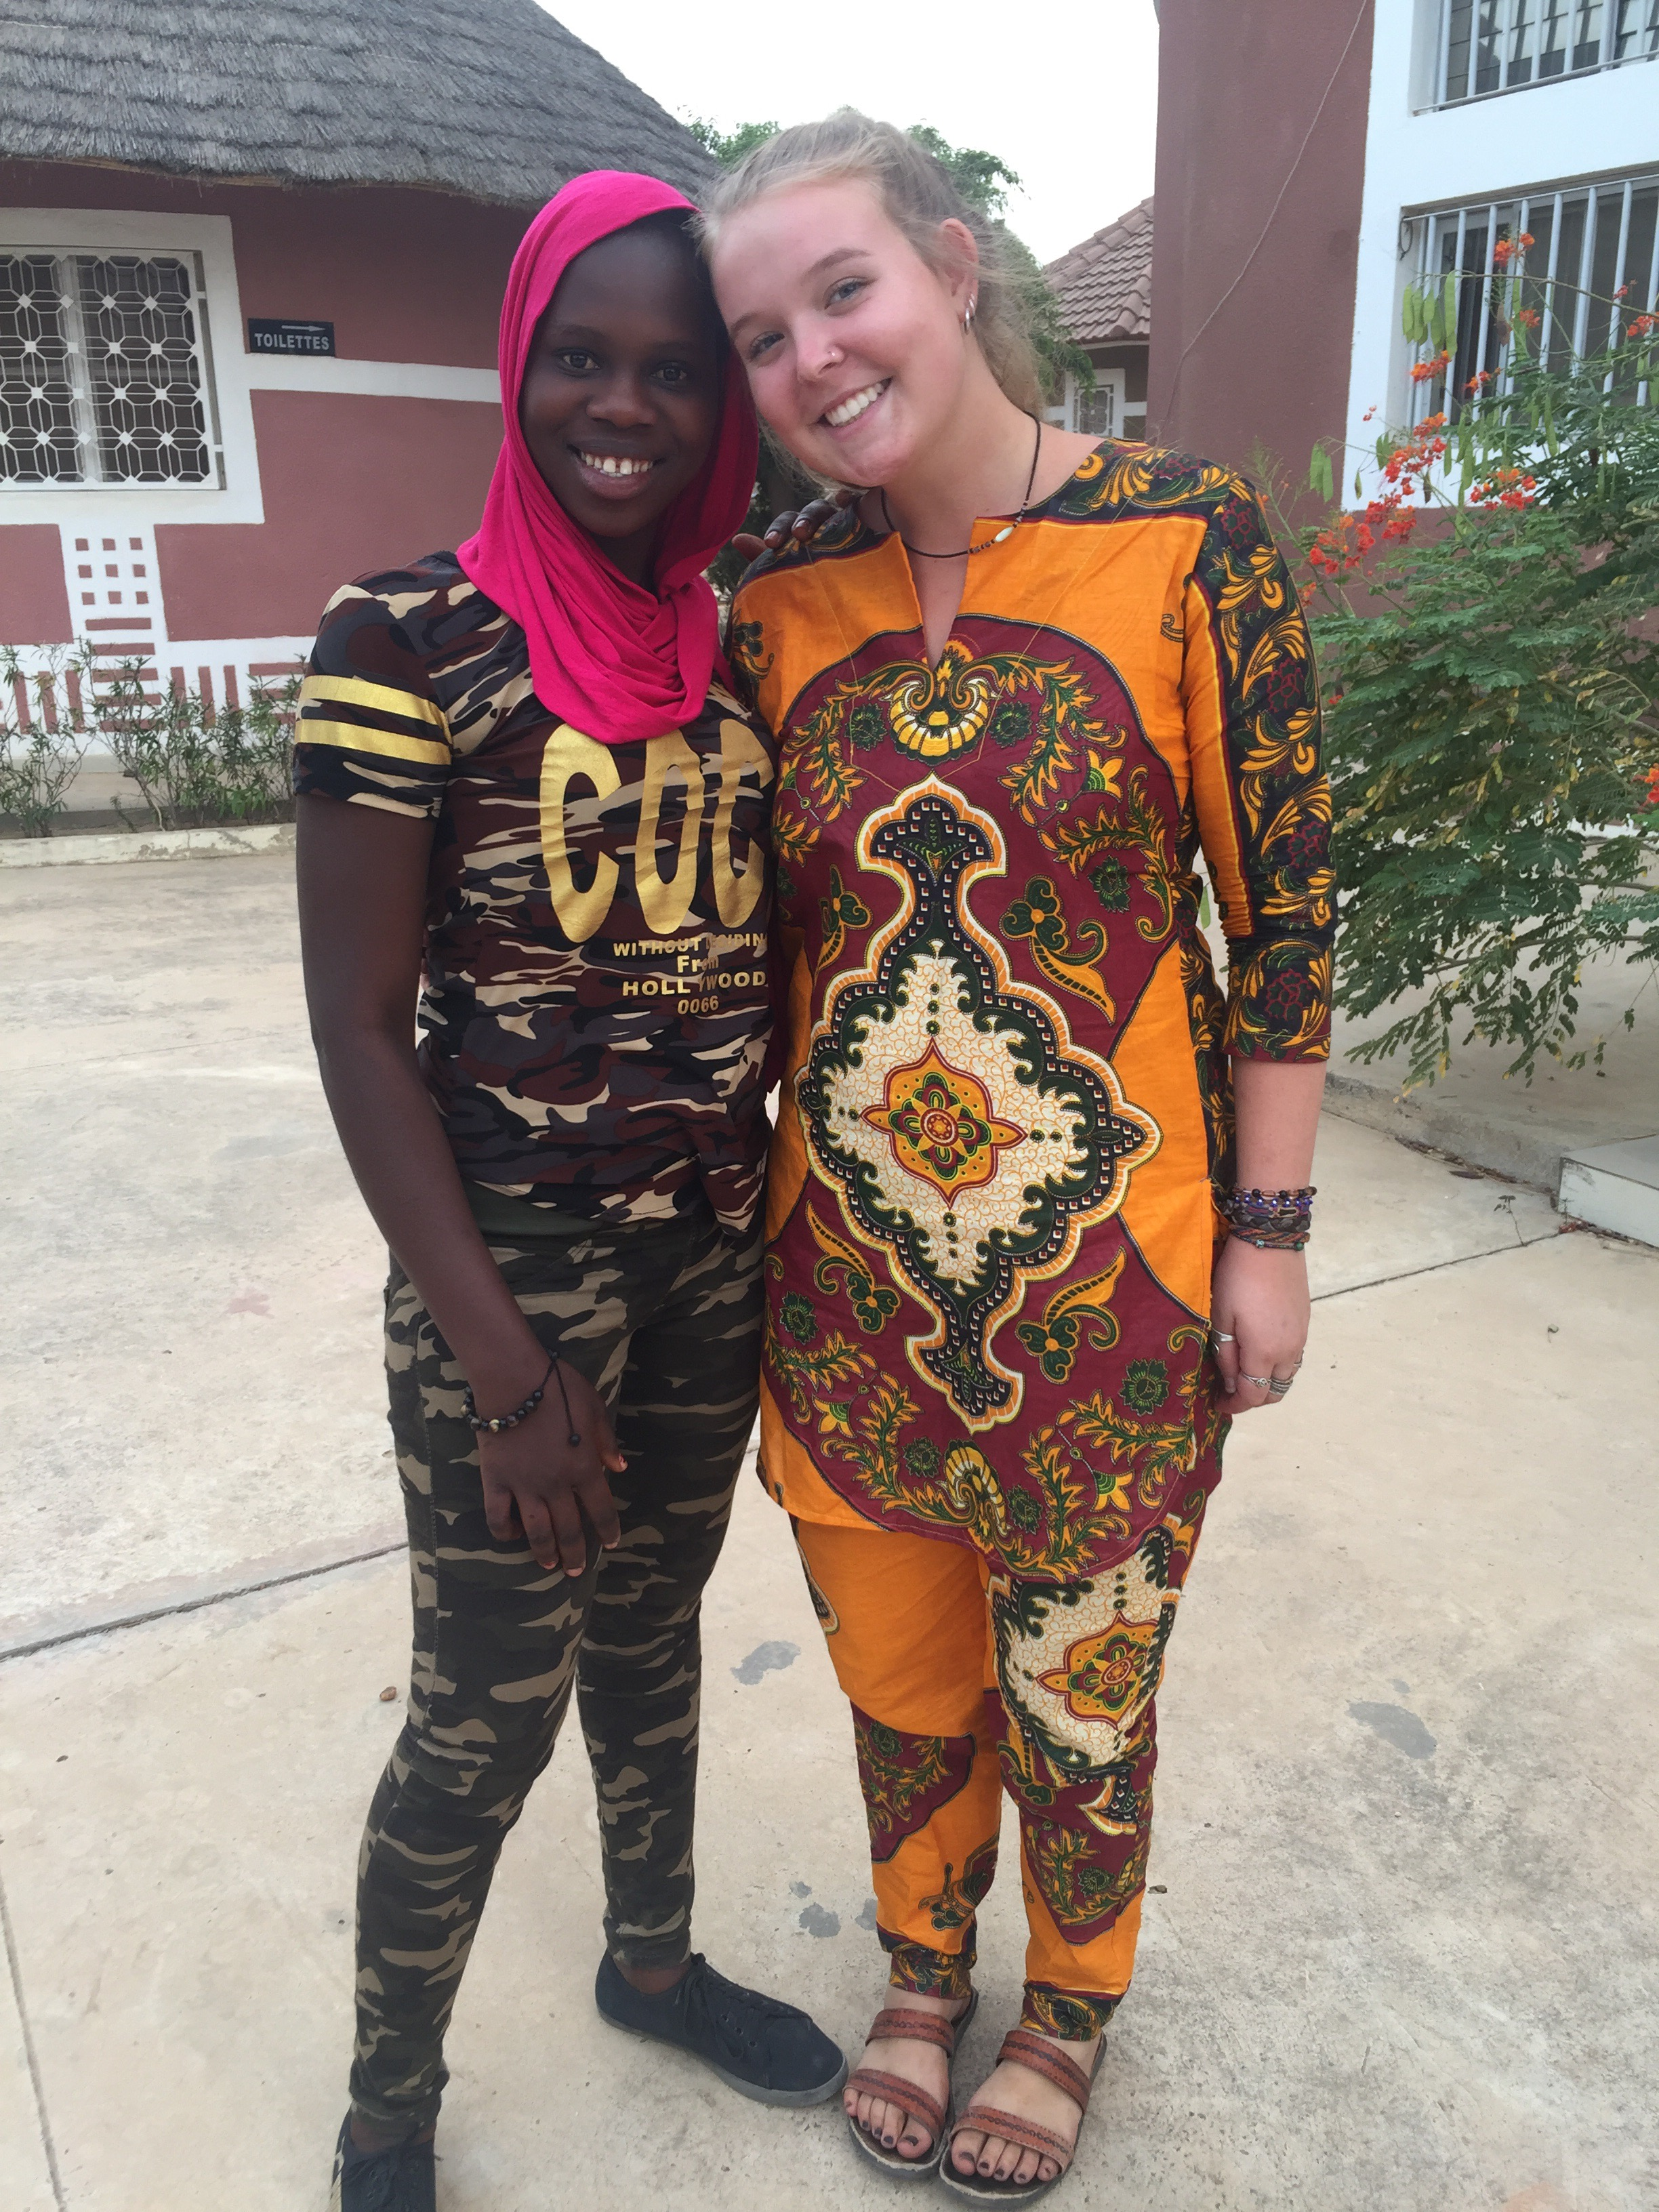 What I've Learned From the Paradoxical De-Sexualization of Women in Senegal